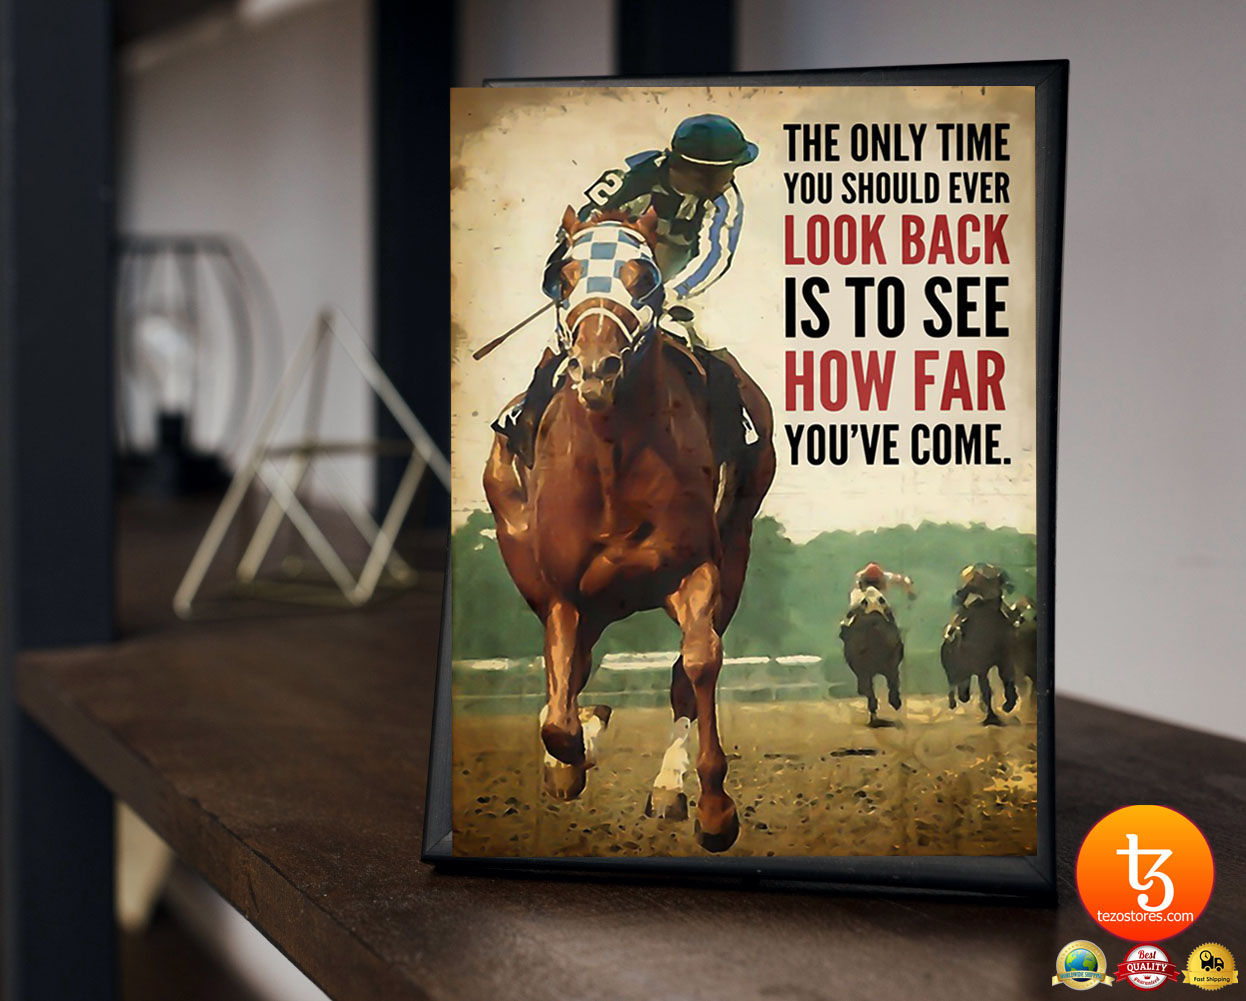 The only time you should ever look back is to see how far you've come poster 13